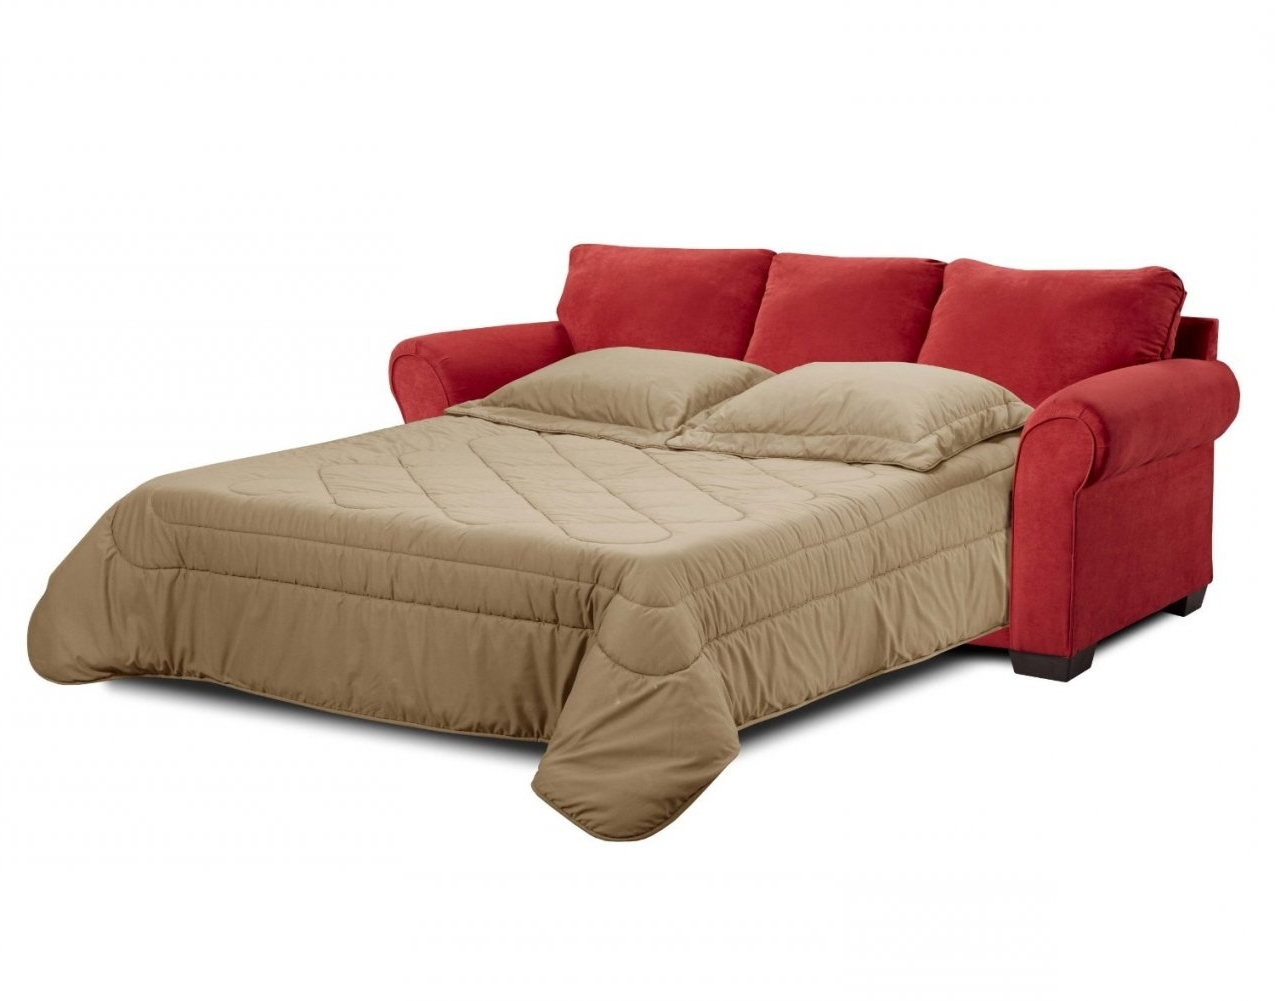 Most Recently Released Queen Size Sleeper Sofa 98 On Sofa Room Ideas With Queen Intended Intended For Queen Size Sofas (View 3 of 15)